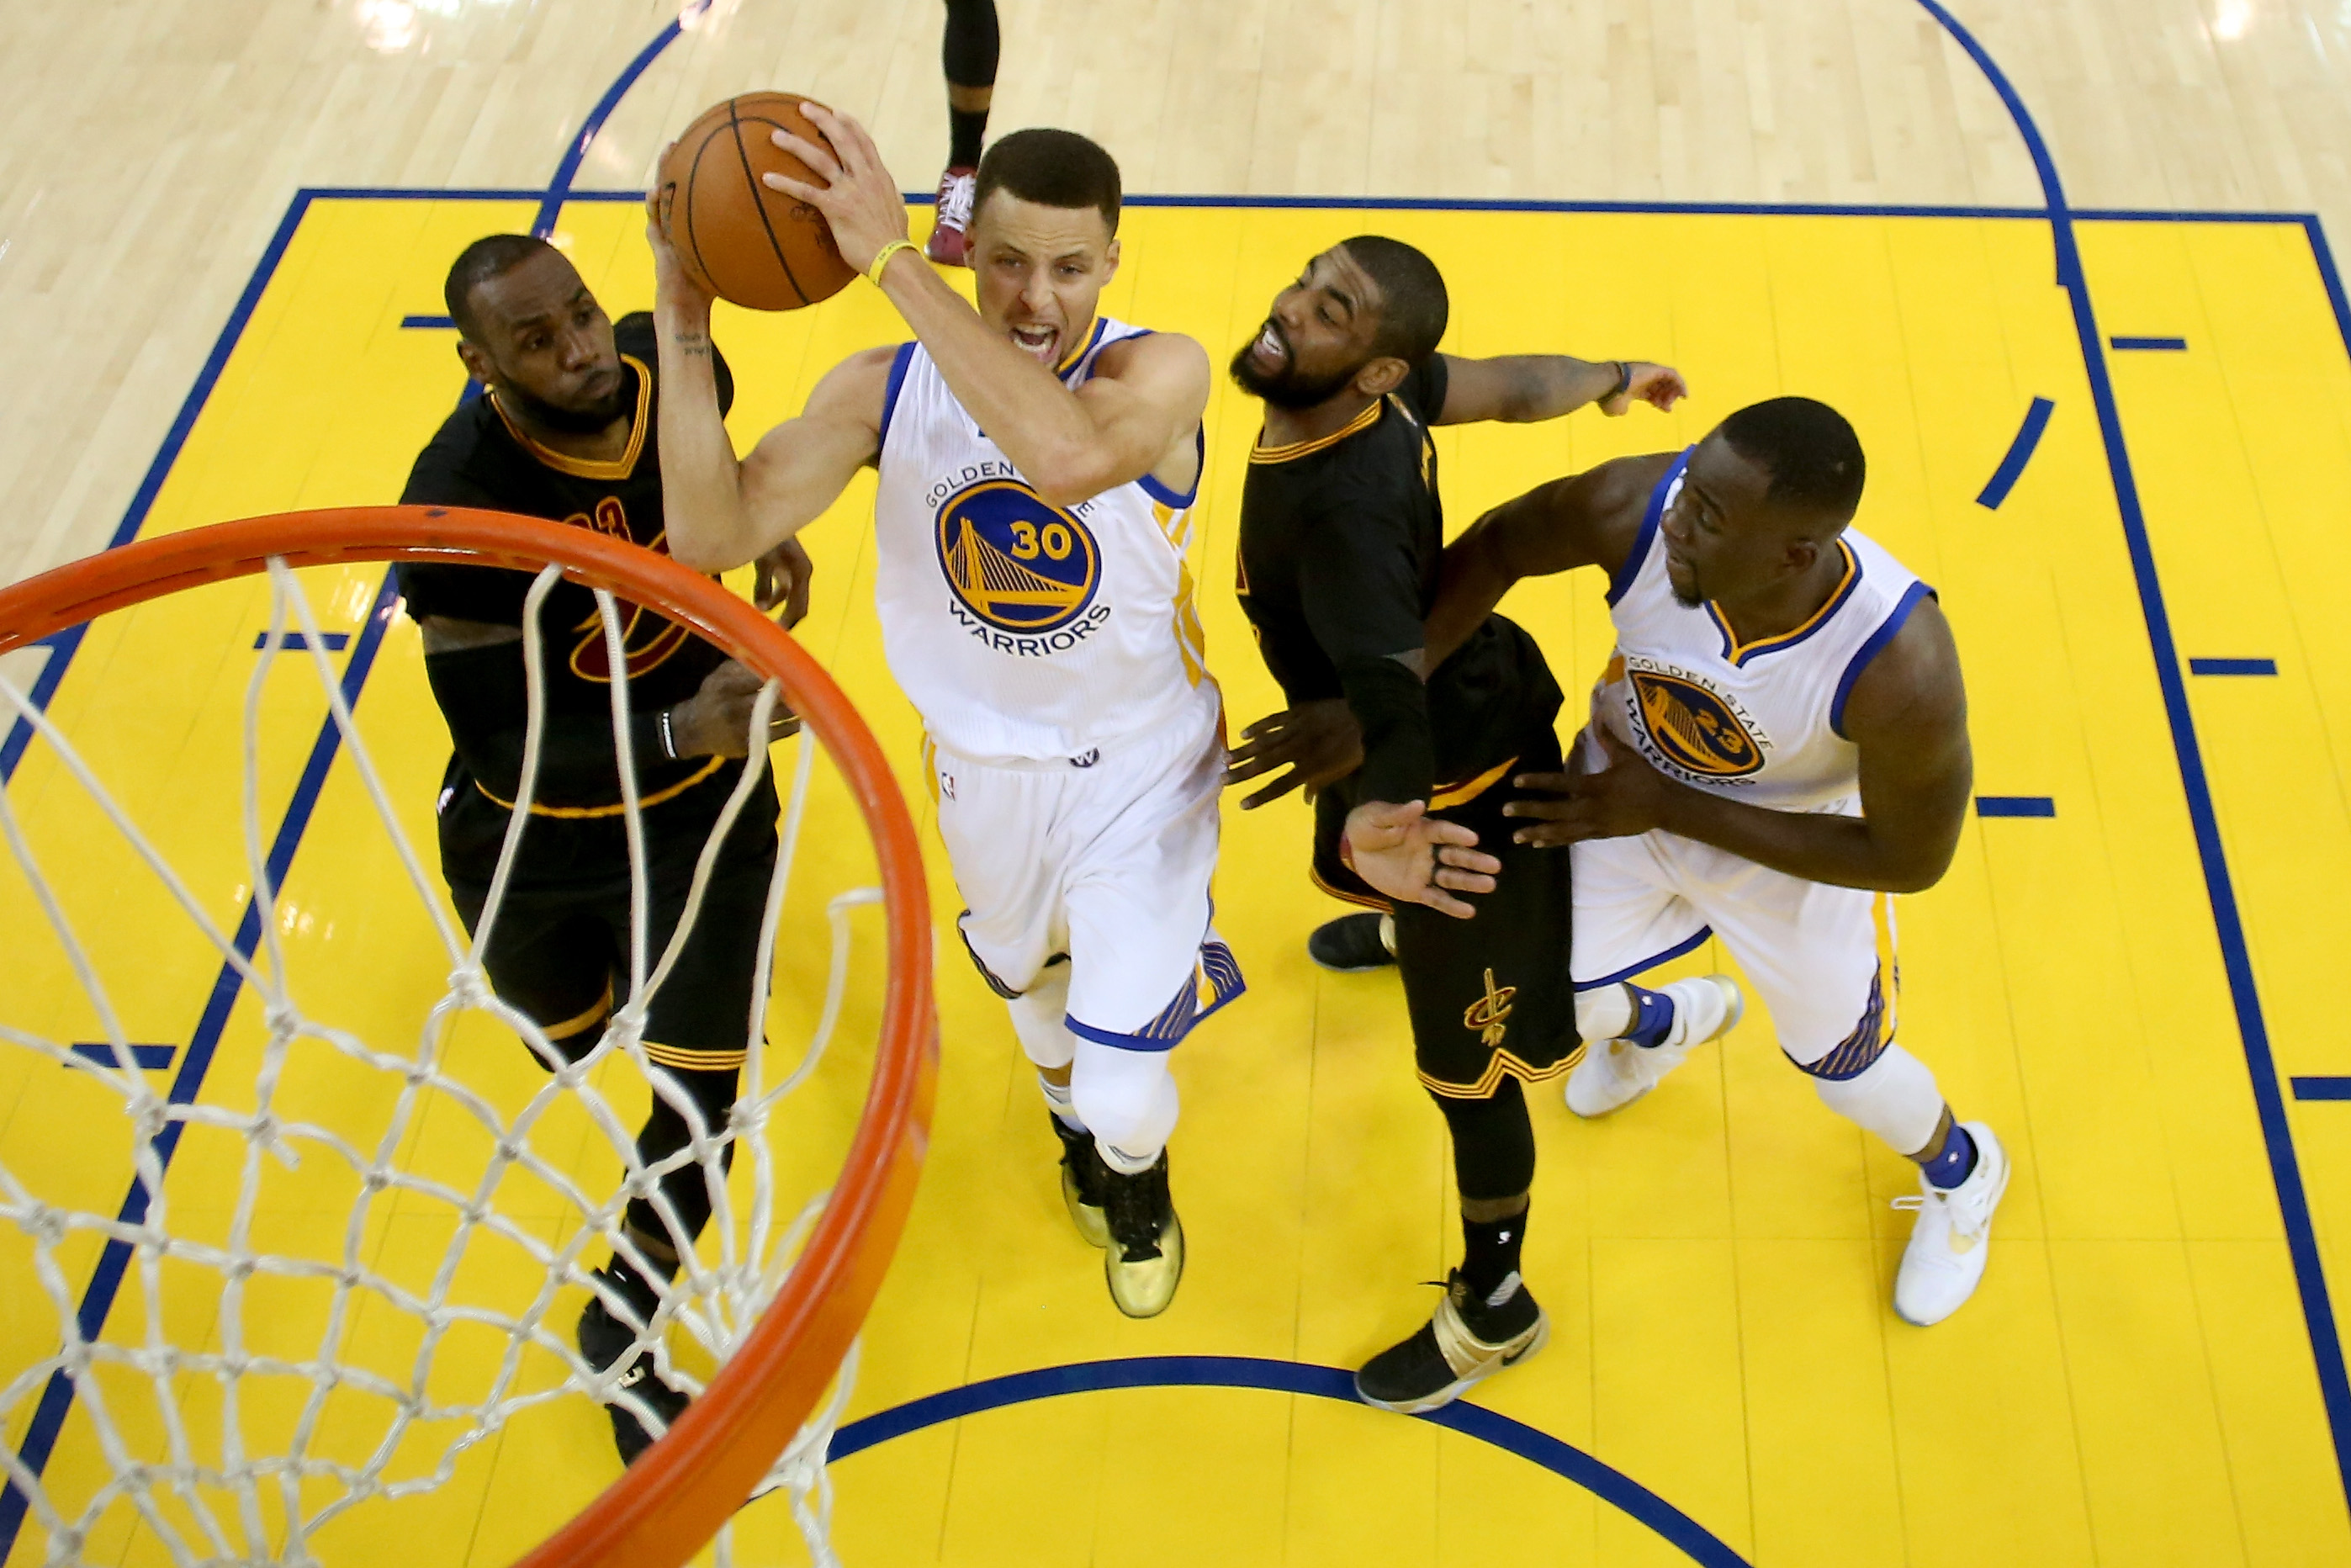 Stephen Curry #30 of the Golden State Warriors goes up for a shot against the Cleveland Cavaliers in Game 7 of the 2016 NBA Finals at ORACLE Arena on June 19, 2016 in Oakland, California.